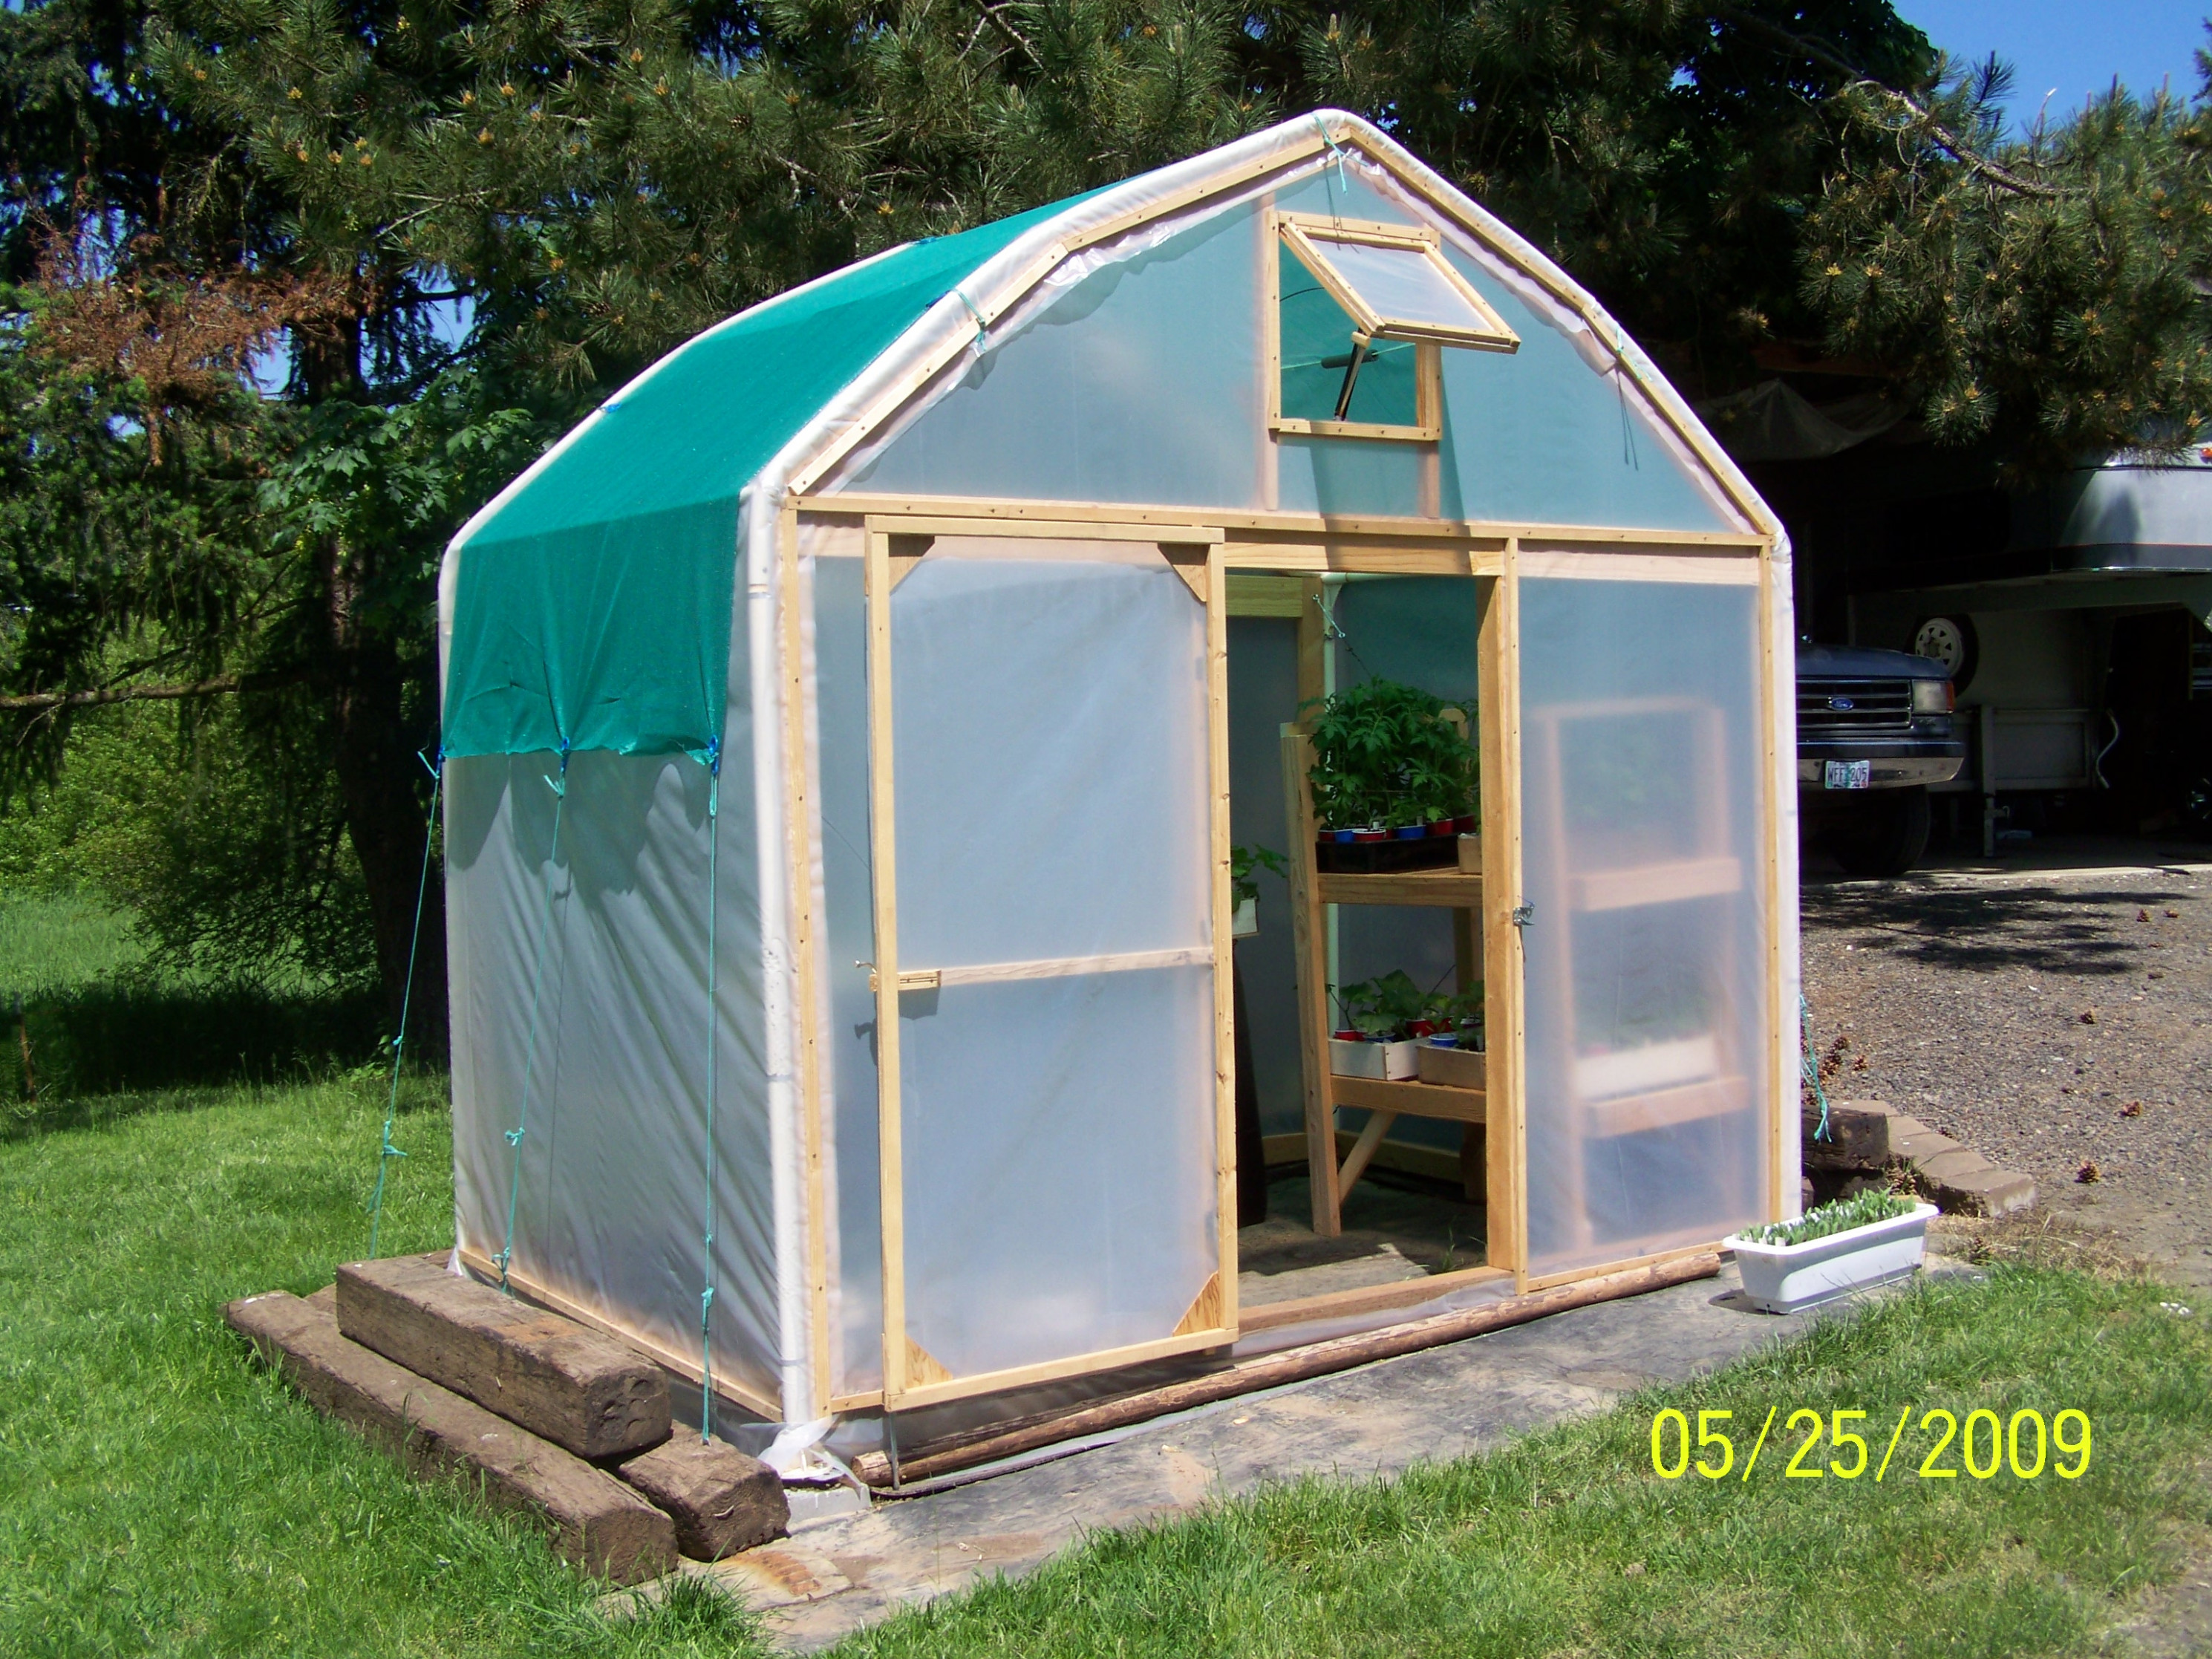 Make A Greenhouse From An Old Carport: 9 Steps (with Pictures) Carport Into Garage